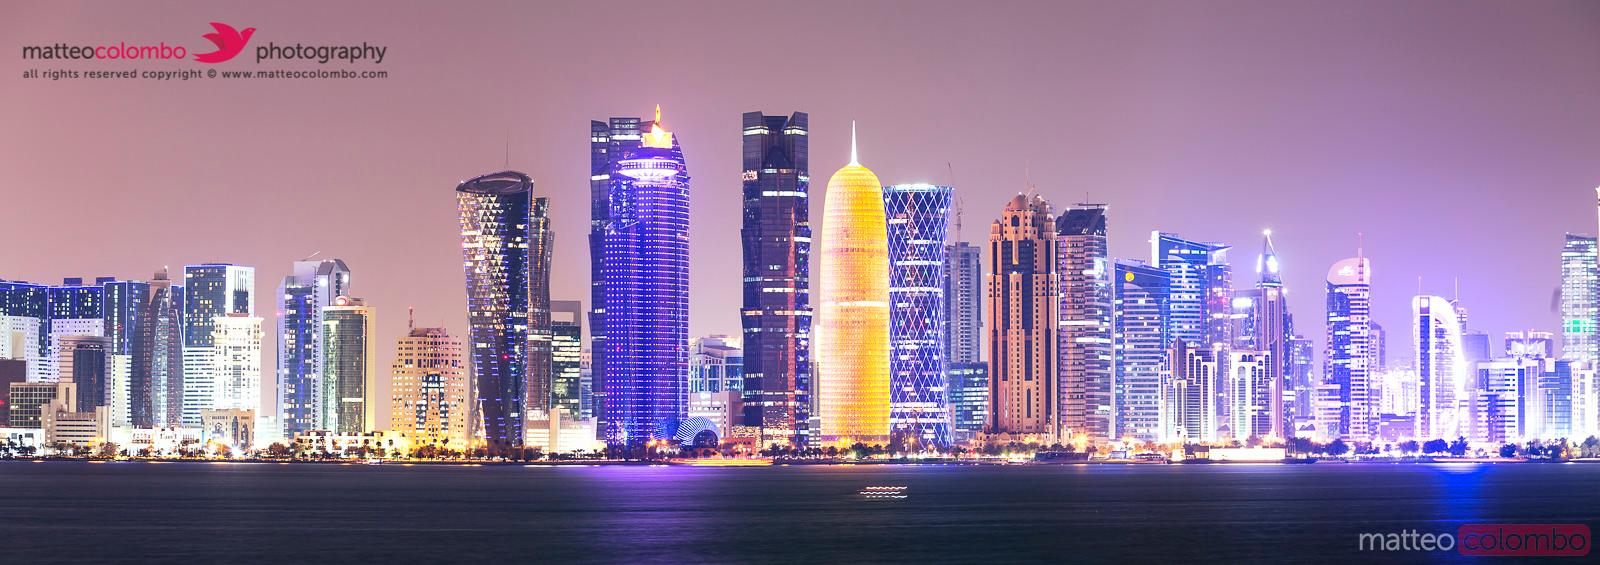 Doha cityscape at night, Qatar